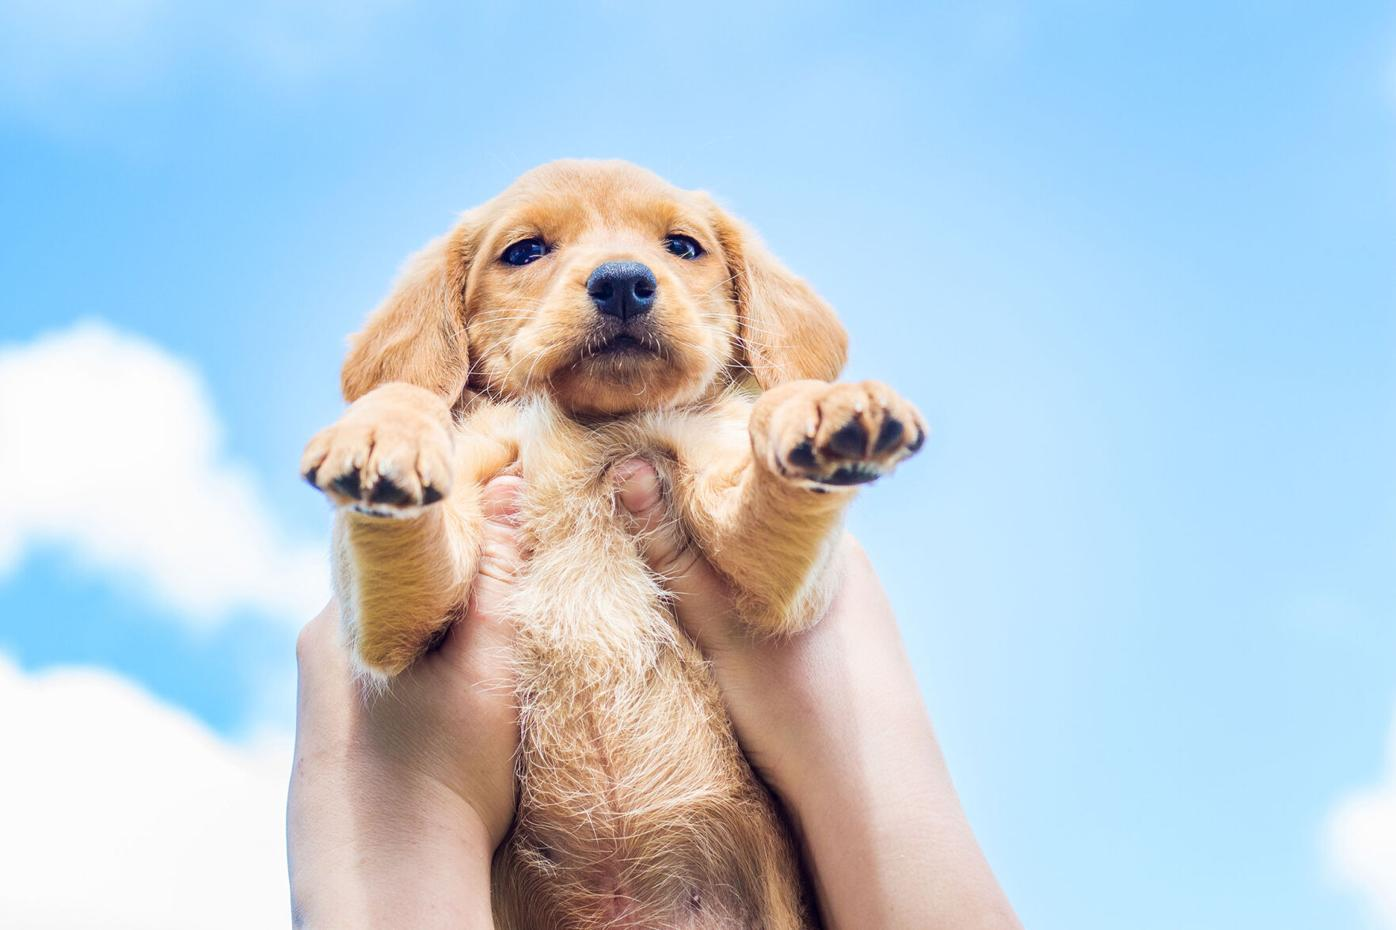 Need More Proof of the Pet Industry's Recession Resilience?